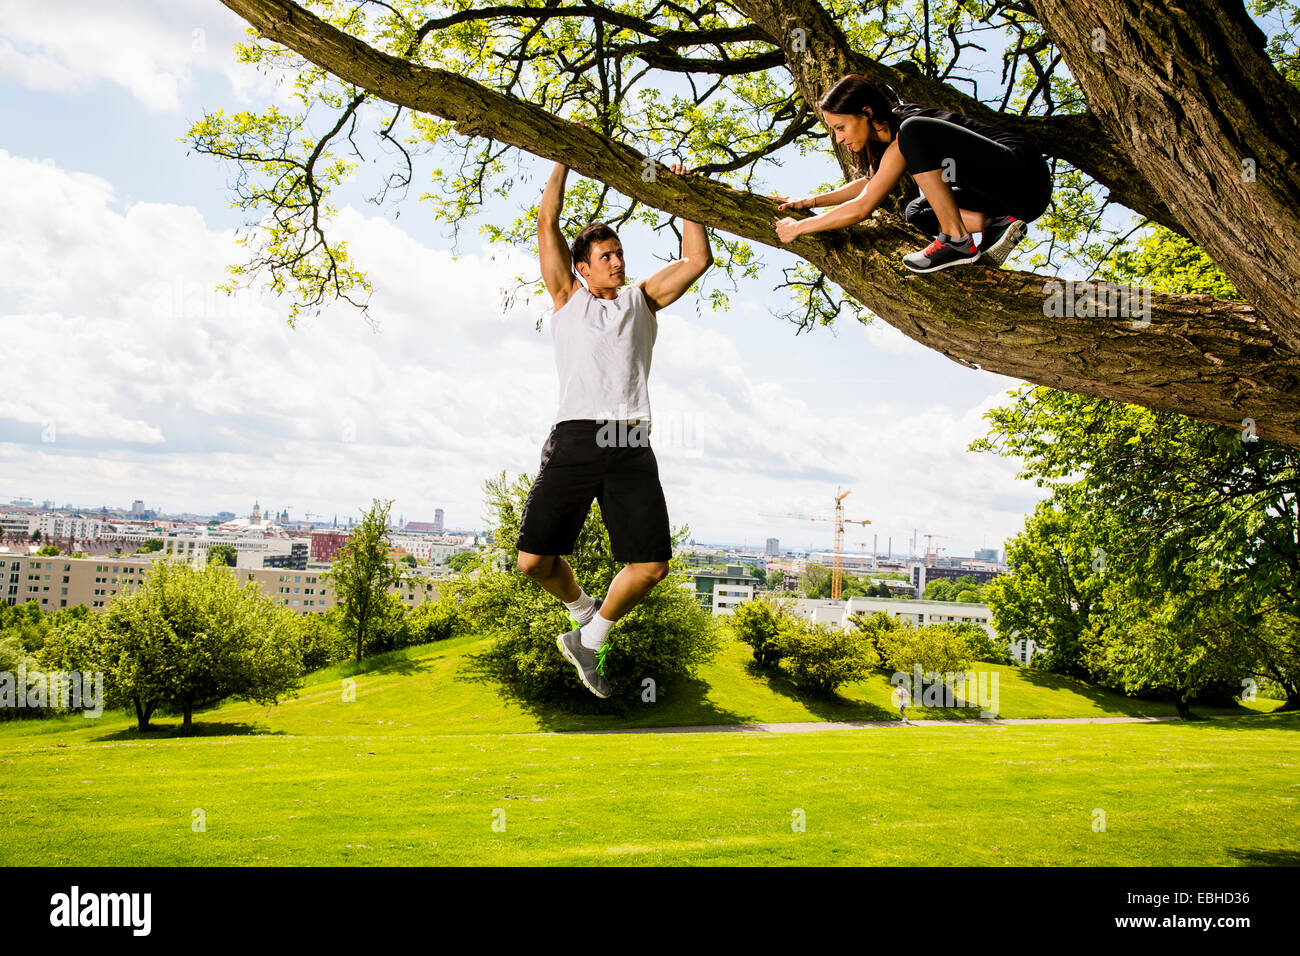 Personal trainers doing outdoor training in urban place, Munich, Bavaria, Germany - Stock Image